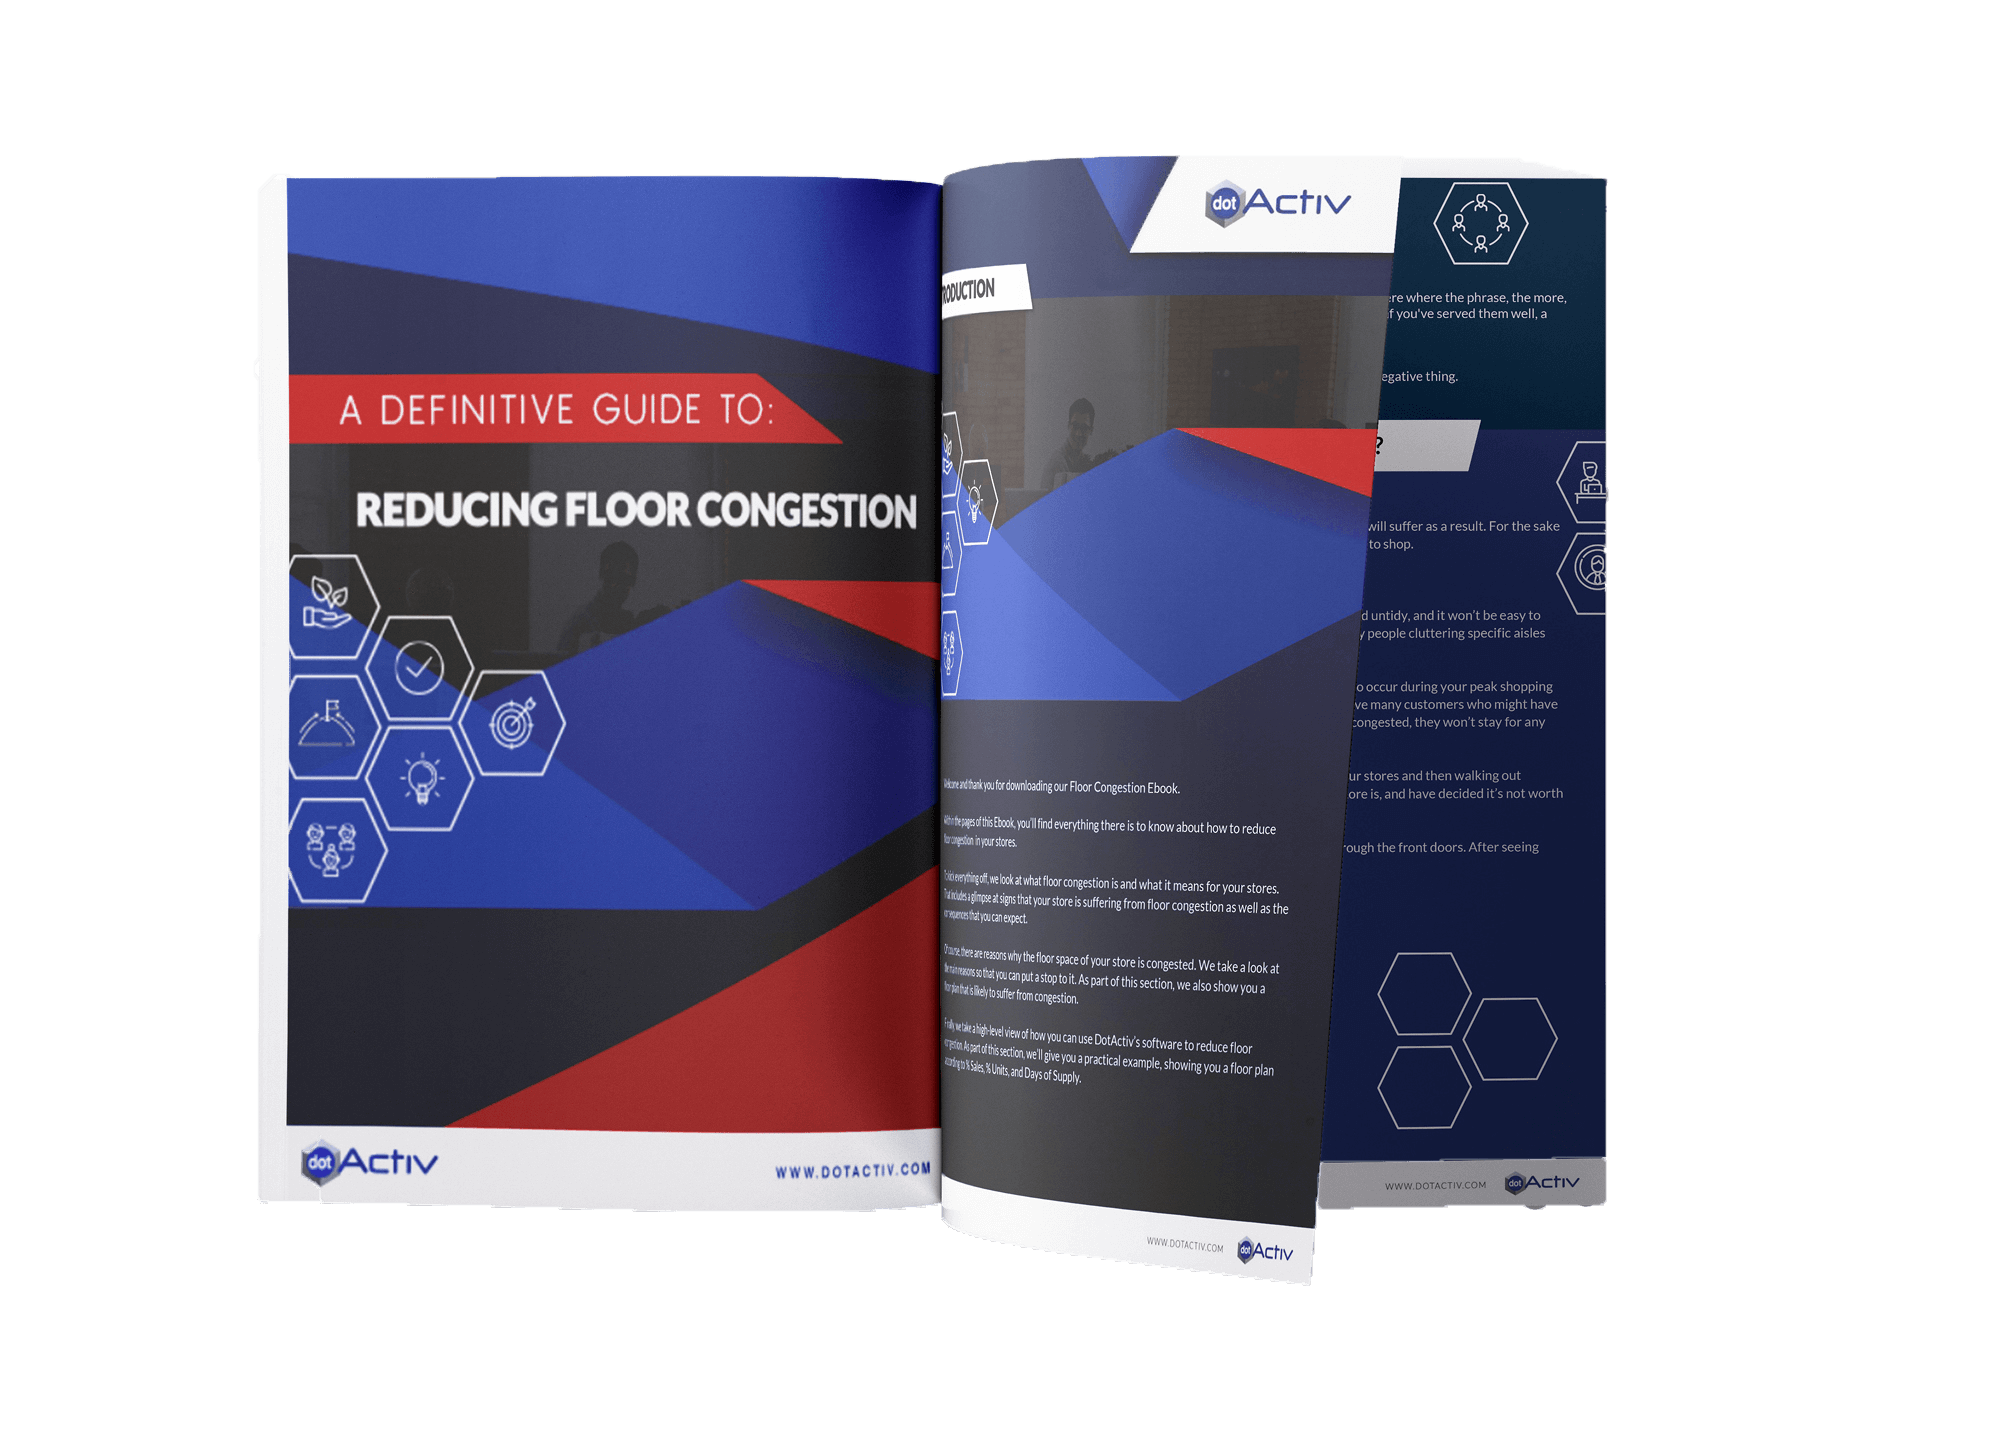 A Definitive Guide to Reducing Floor Congestion ebook